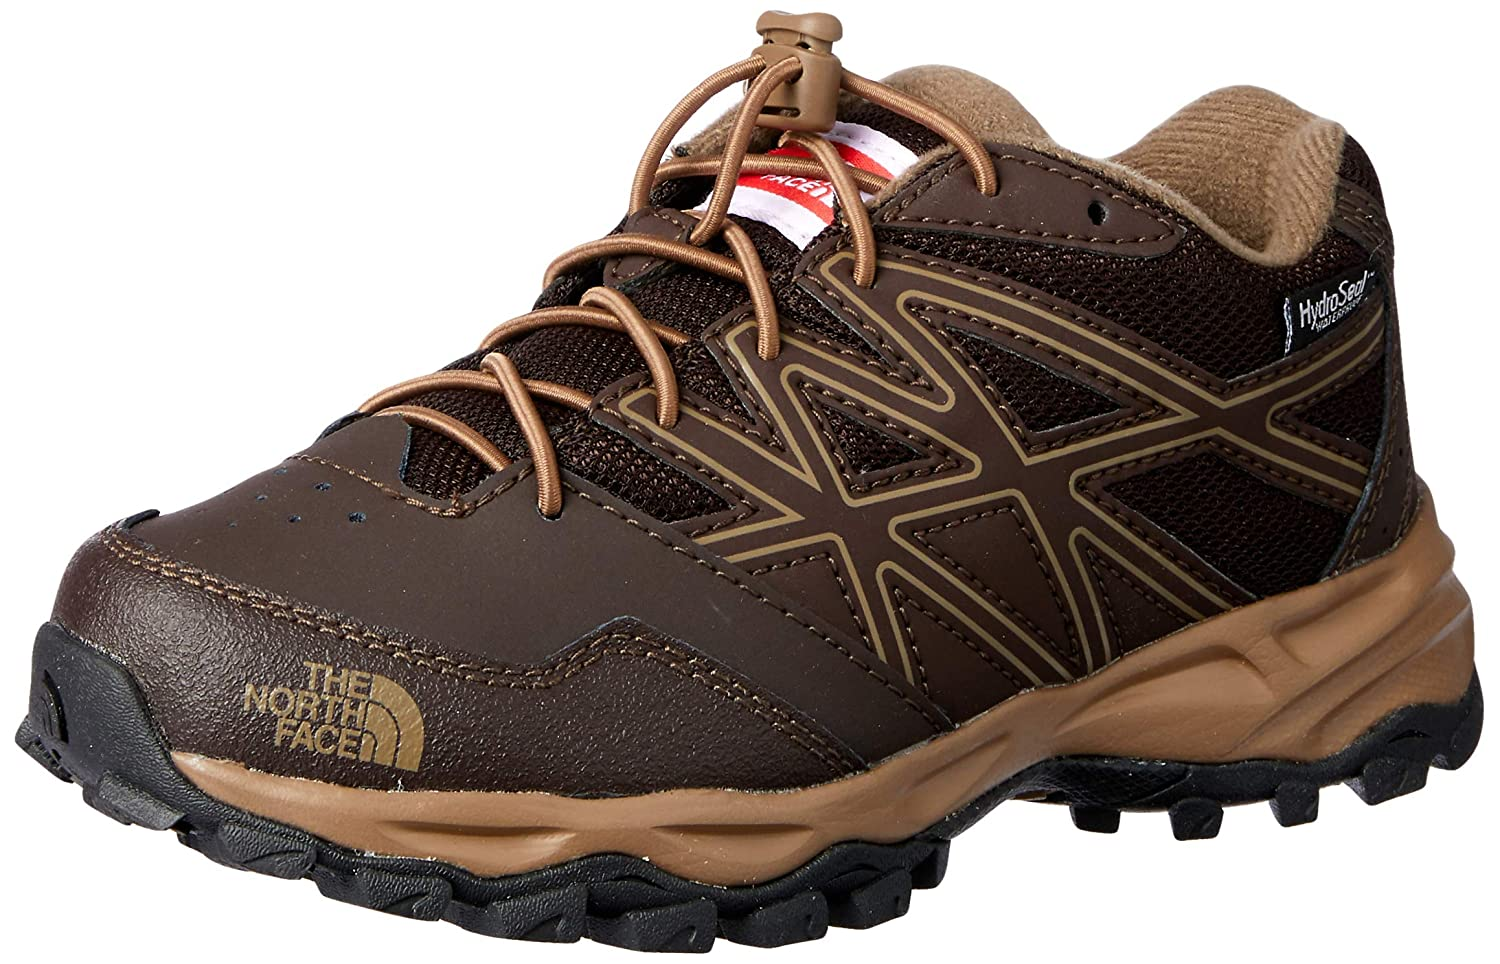 THE NORTH FACE Kids' Jr Hedgehog Hiker Wp Low Rise Hiking Boots